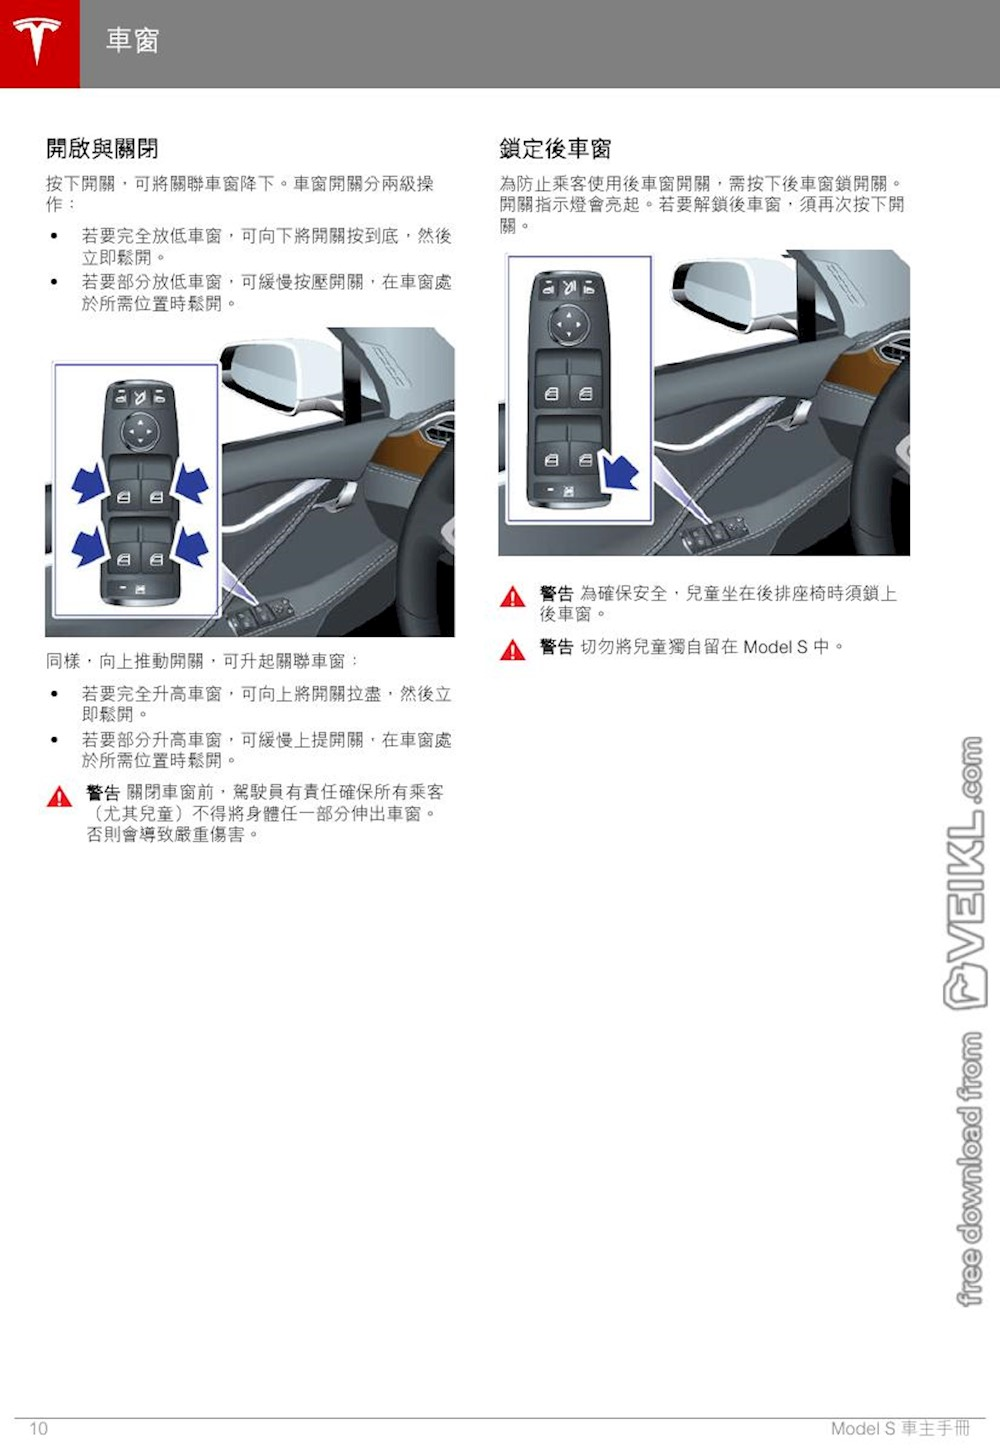 Tesla Model S Owner's manual Macau 2019 ZH